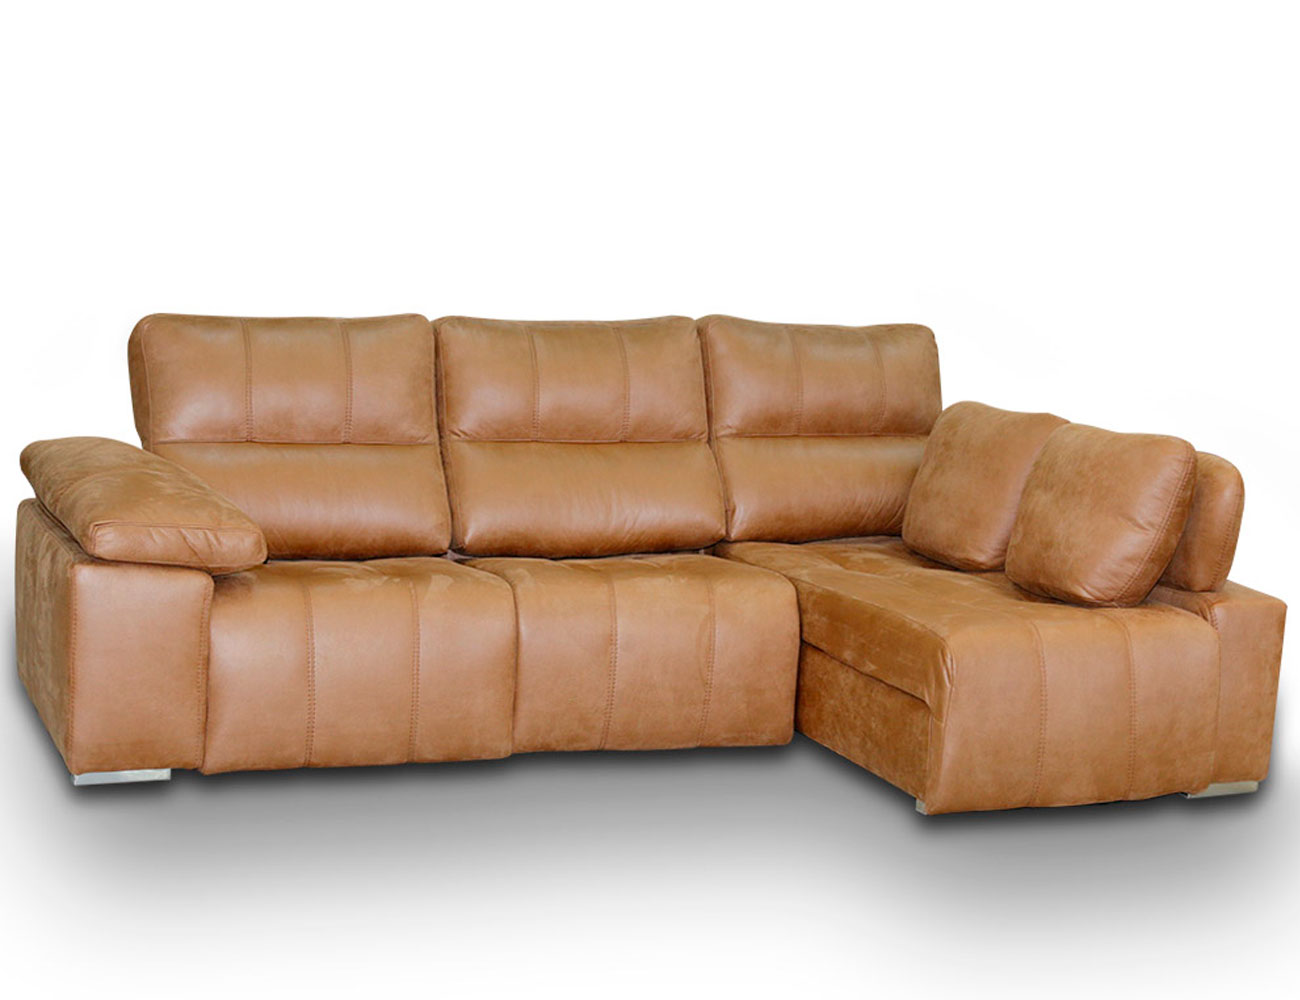 Sofa chaiselongue relax 2 motores anti manchas55